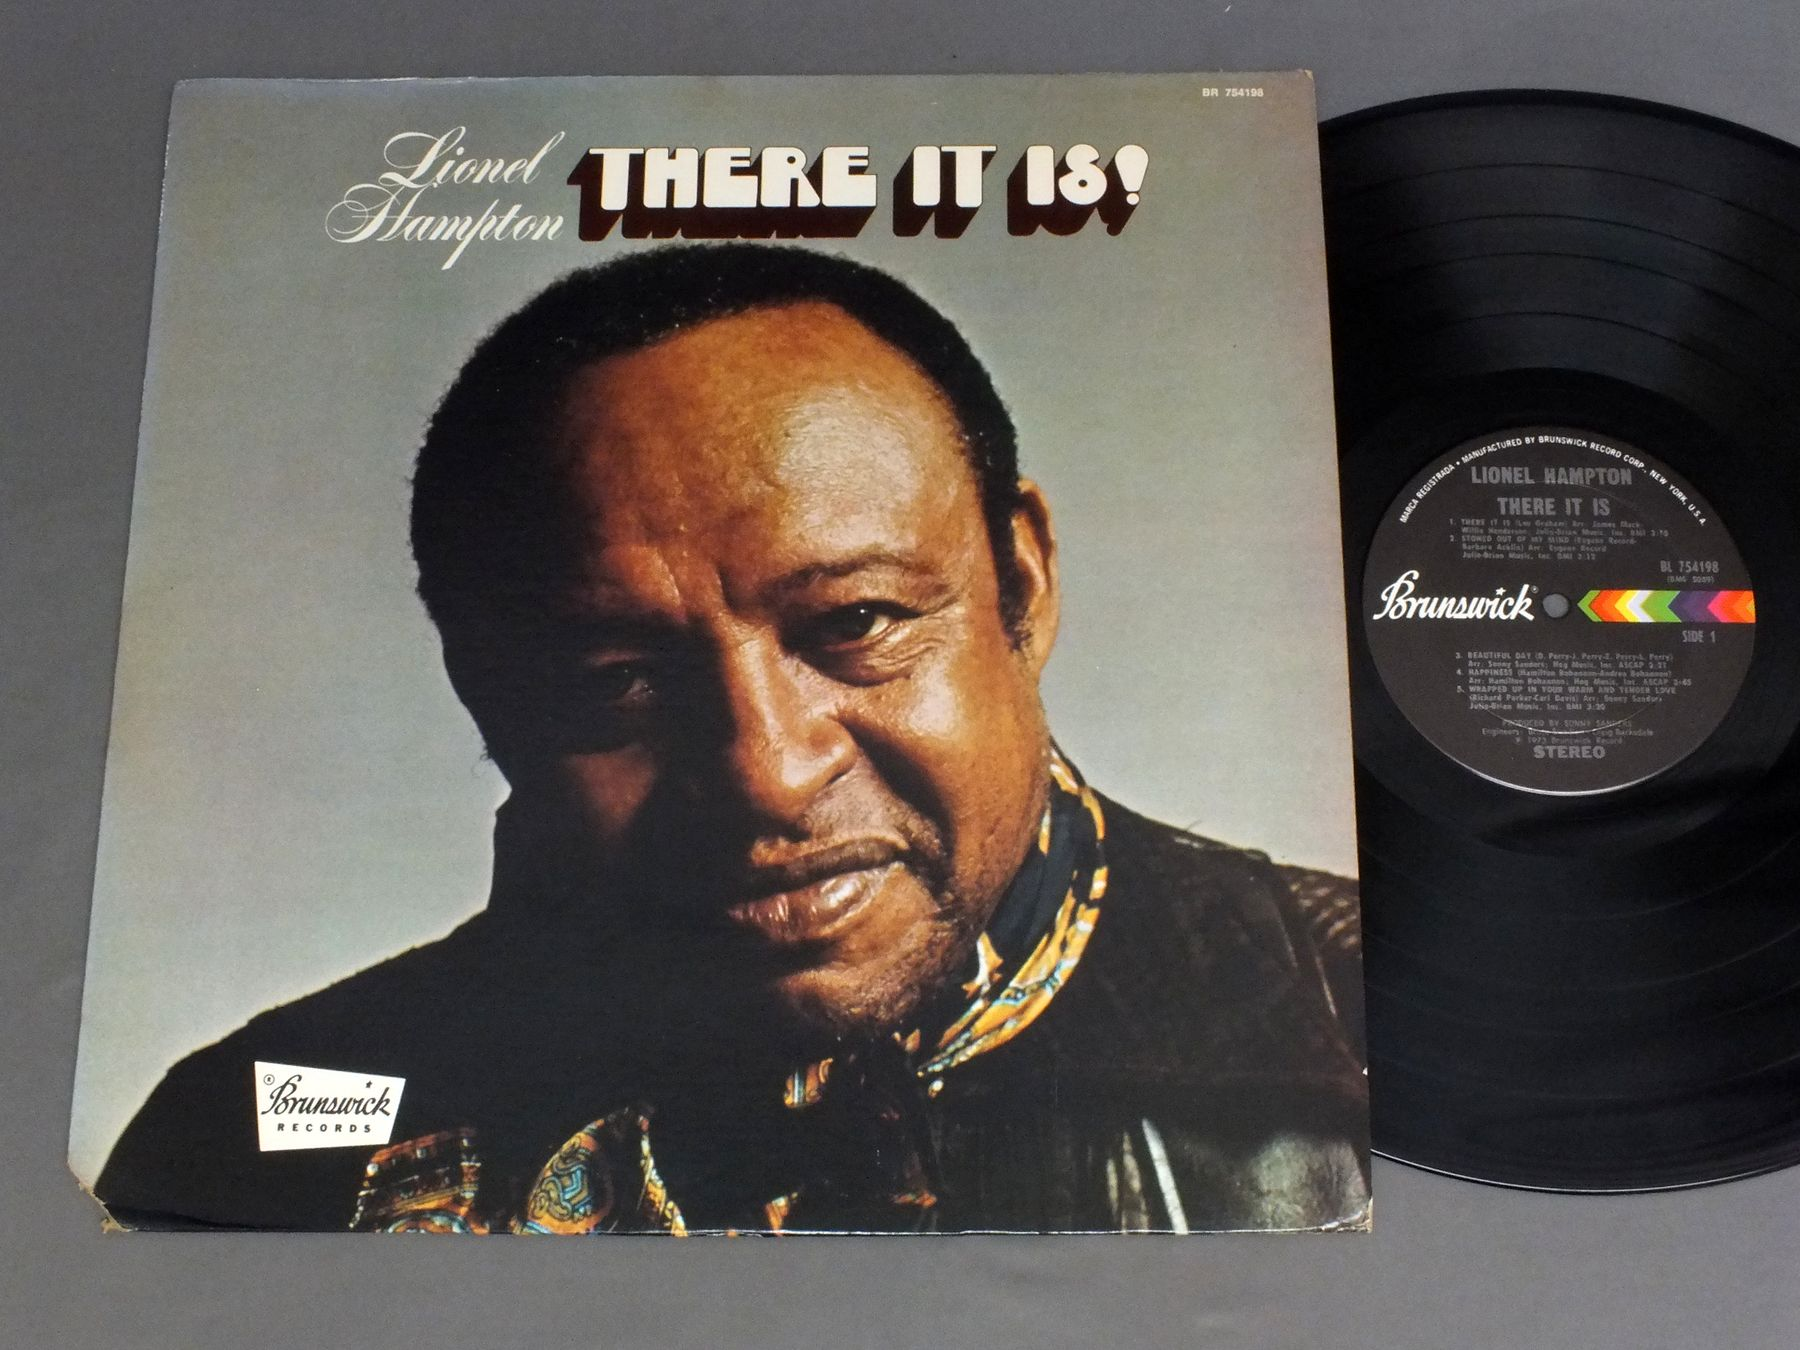 LIONEL HAMPTON - THERE IT IS ! - 33T